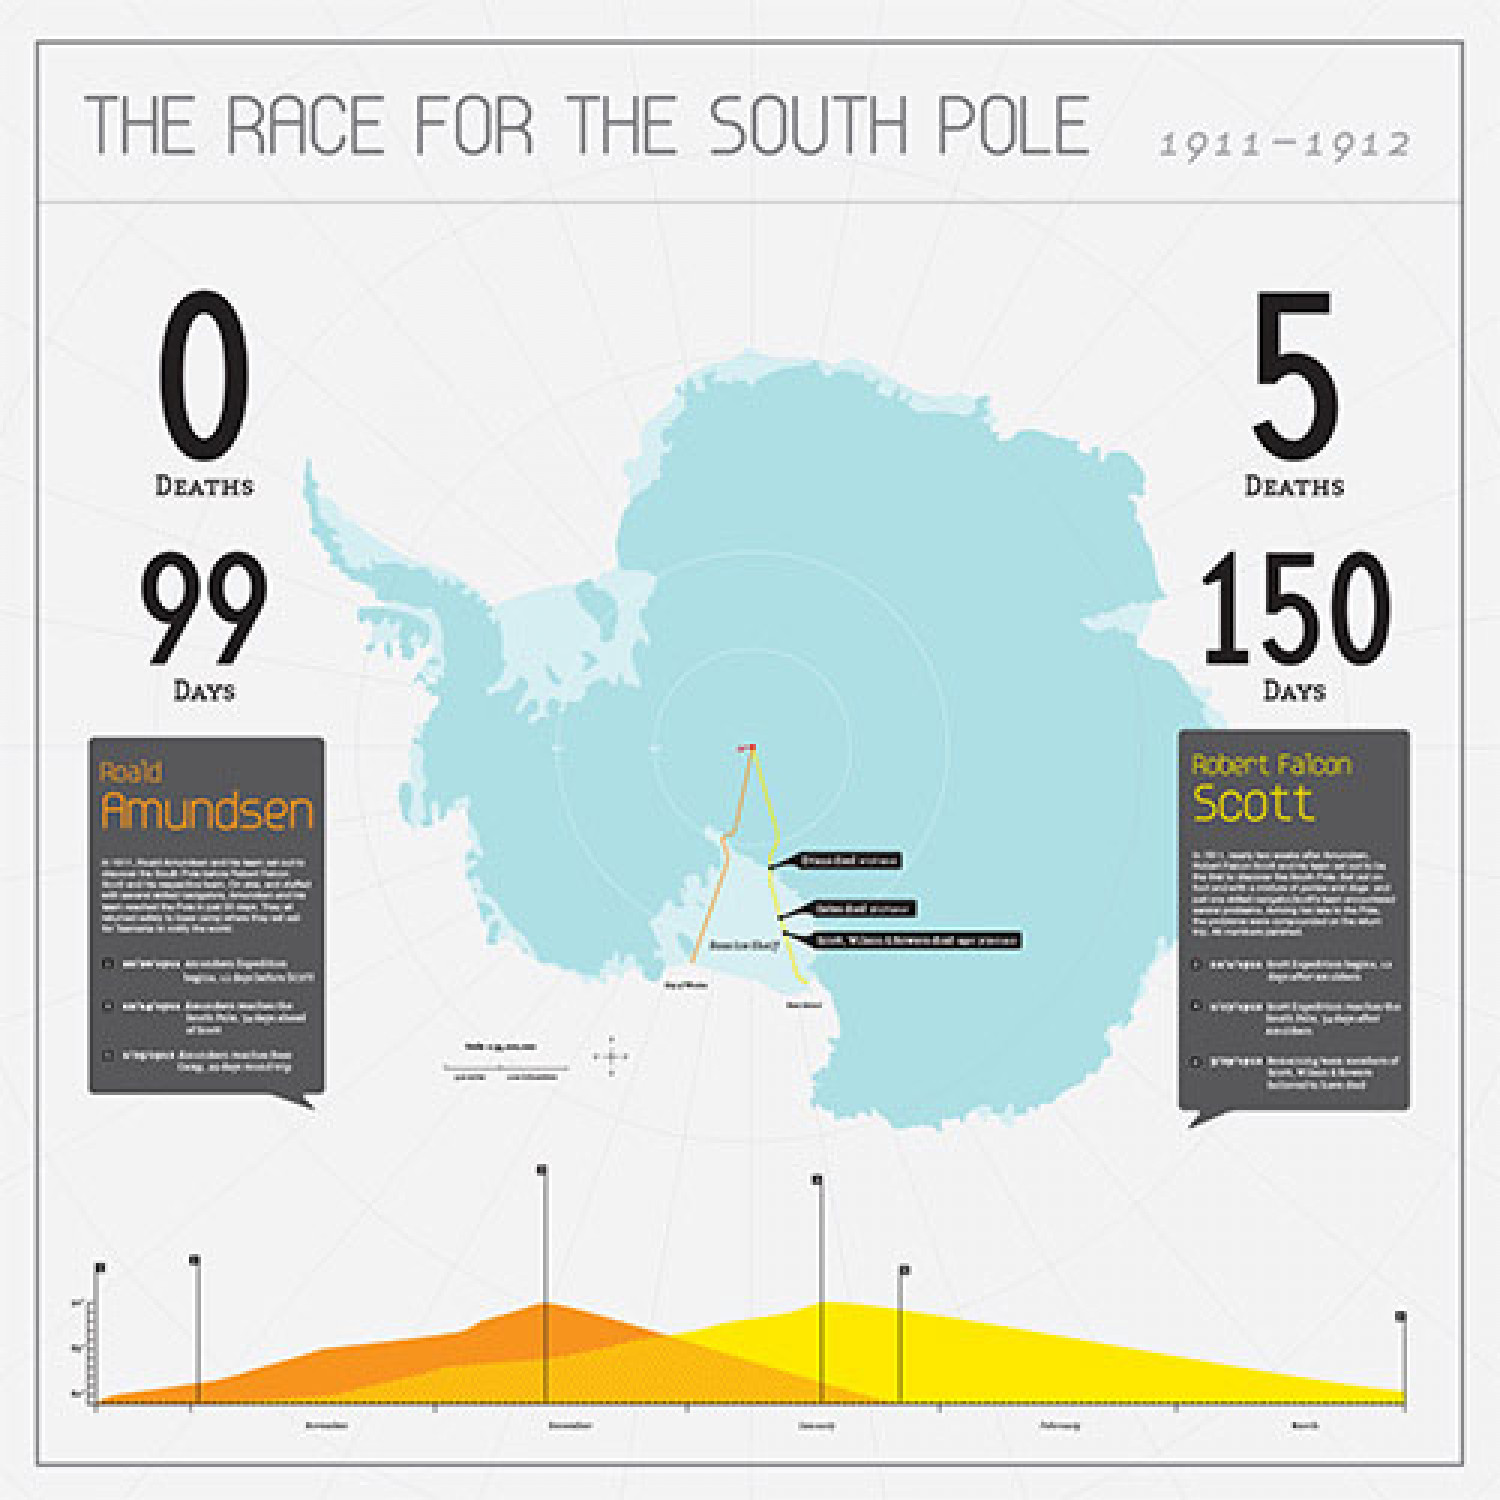 Race for the South Pole Infographic